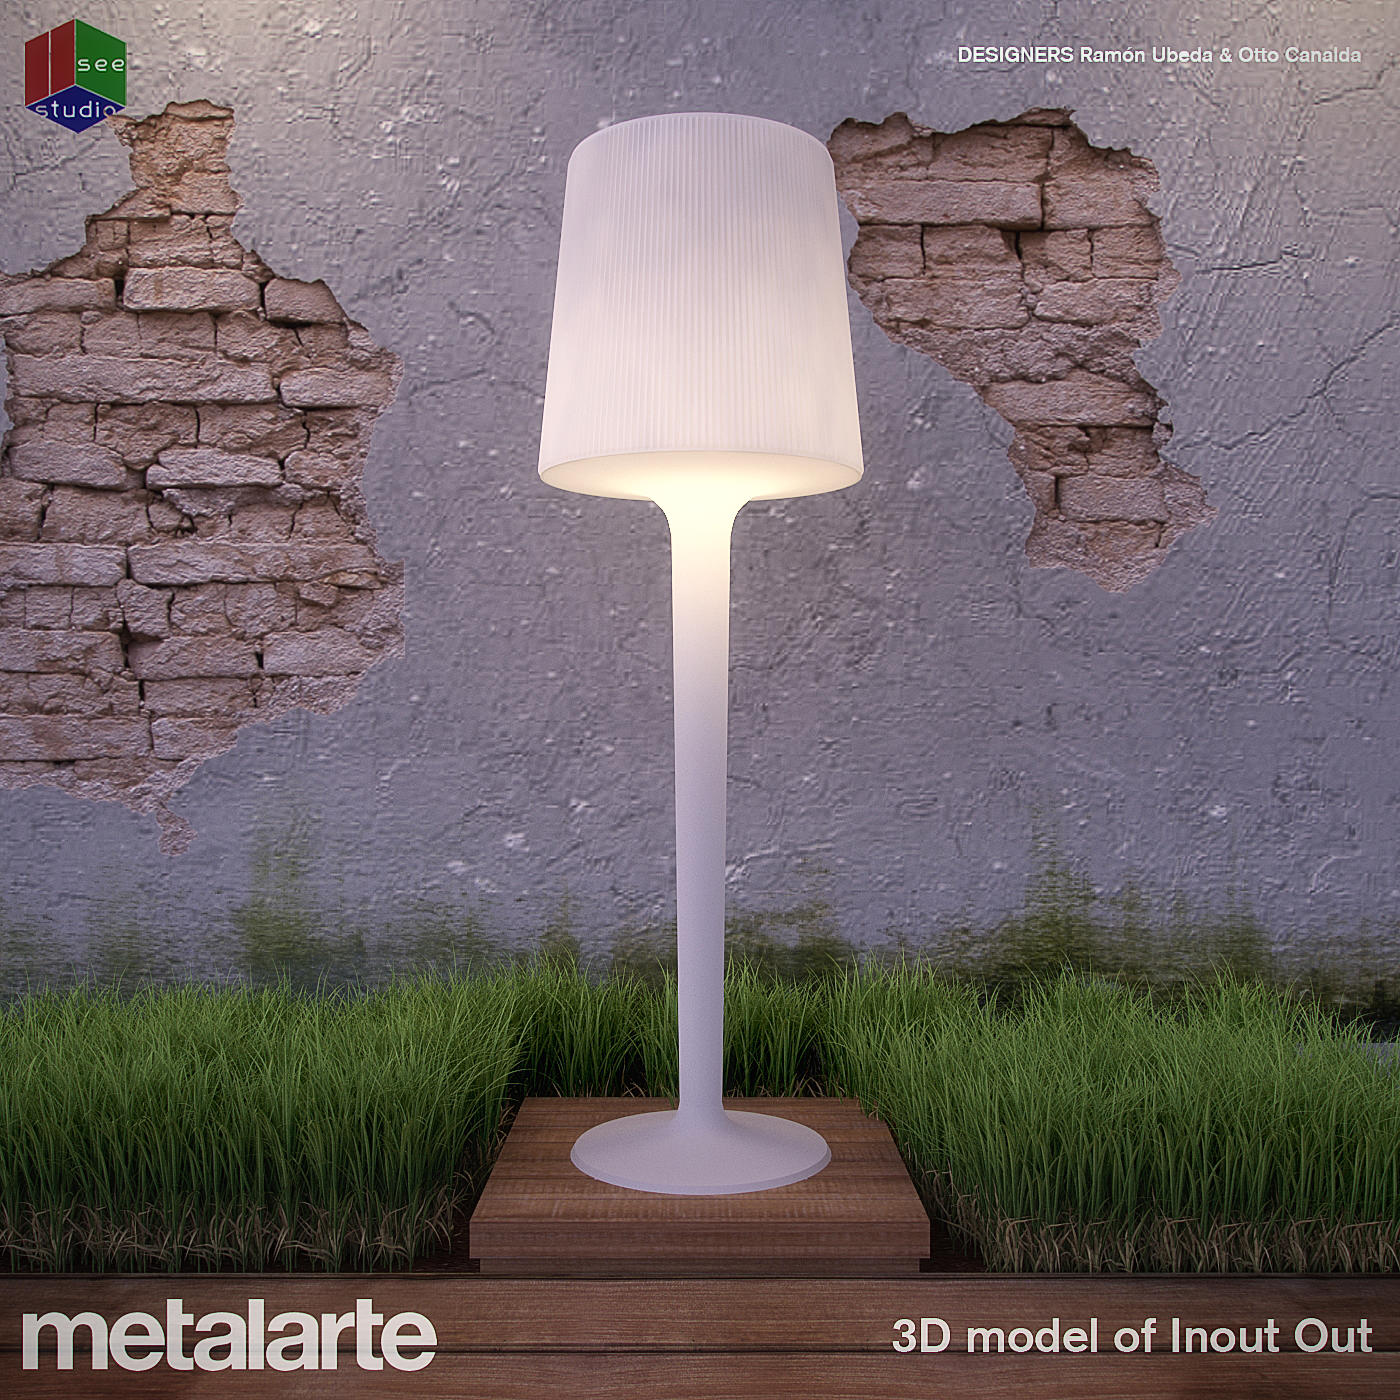 Garden Lamp 3d Model: Metalarte Inout Out Lamp 3D Model